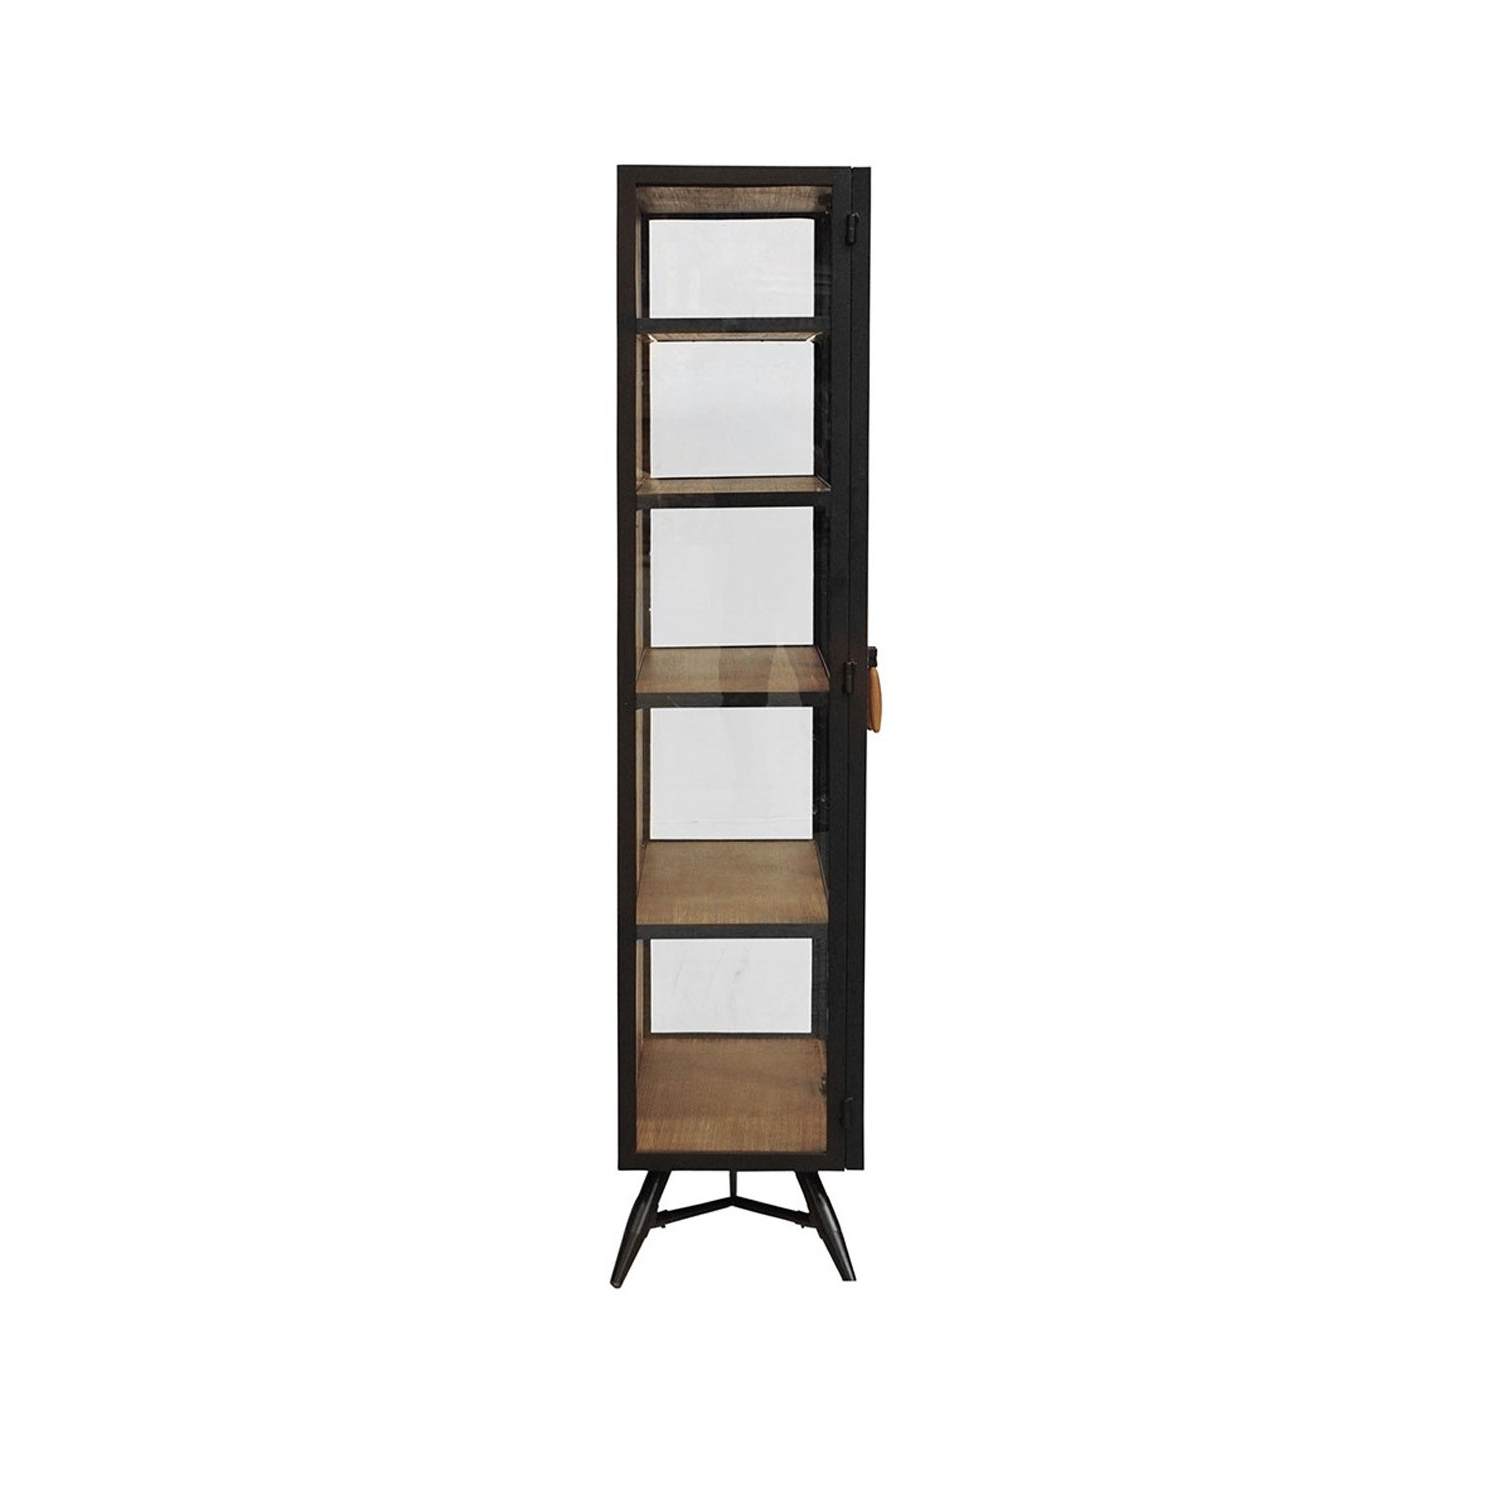 Popular Acacia Wood Medley Medium Dining Tables With Metal Base With Regard To Medley Armoire (View 15 of 26)